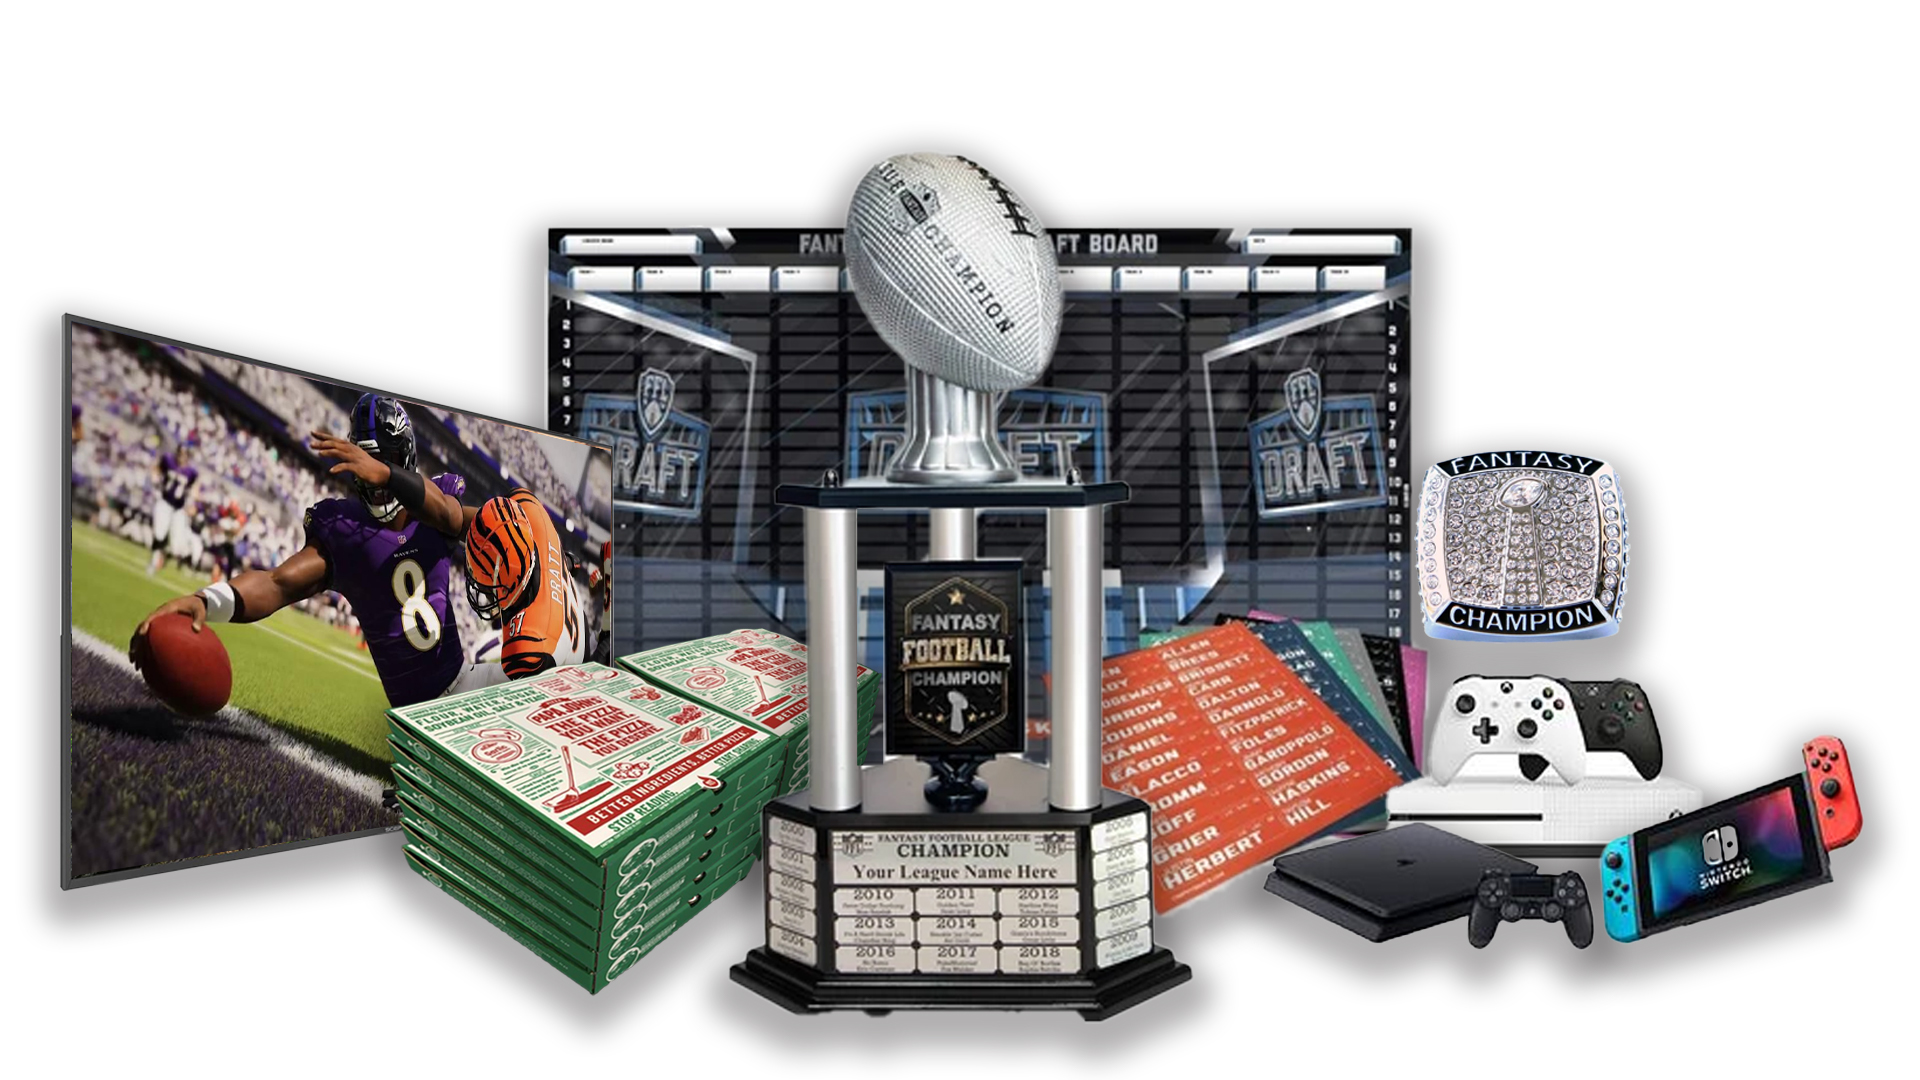 - FFDraft Trophy 3 White Pizza2 - Fantasy Football Draft Parties at 1Life2Play